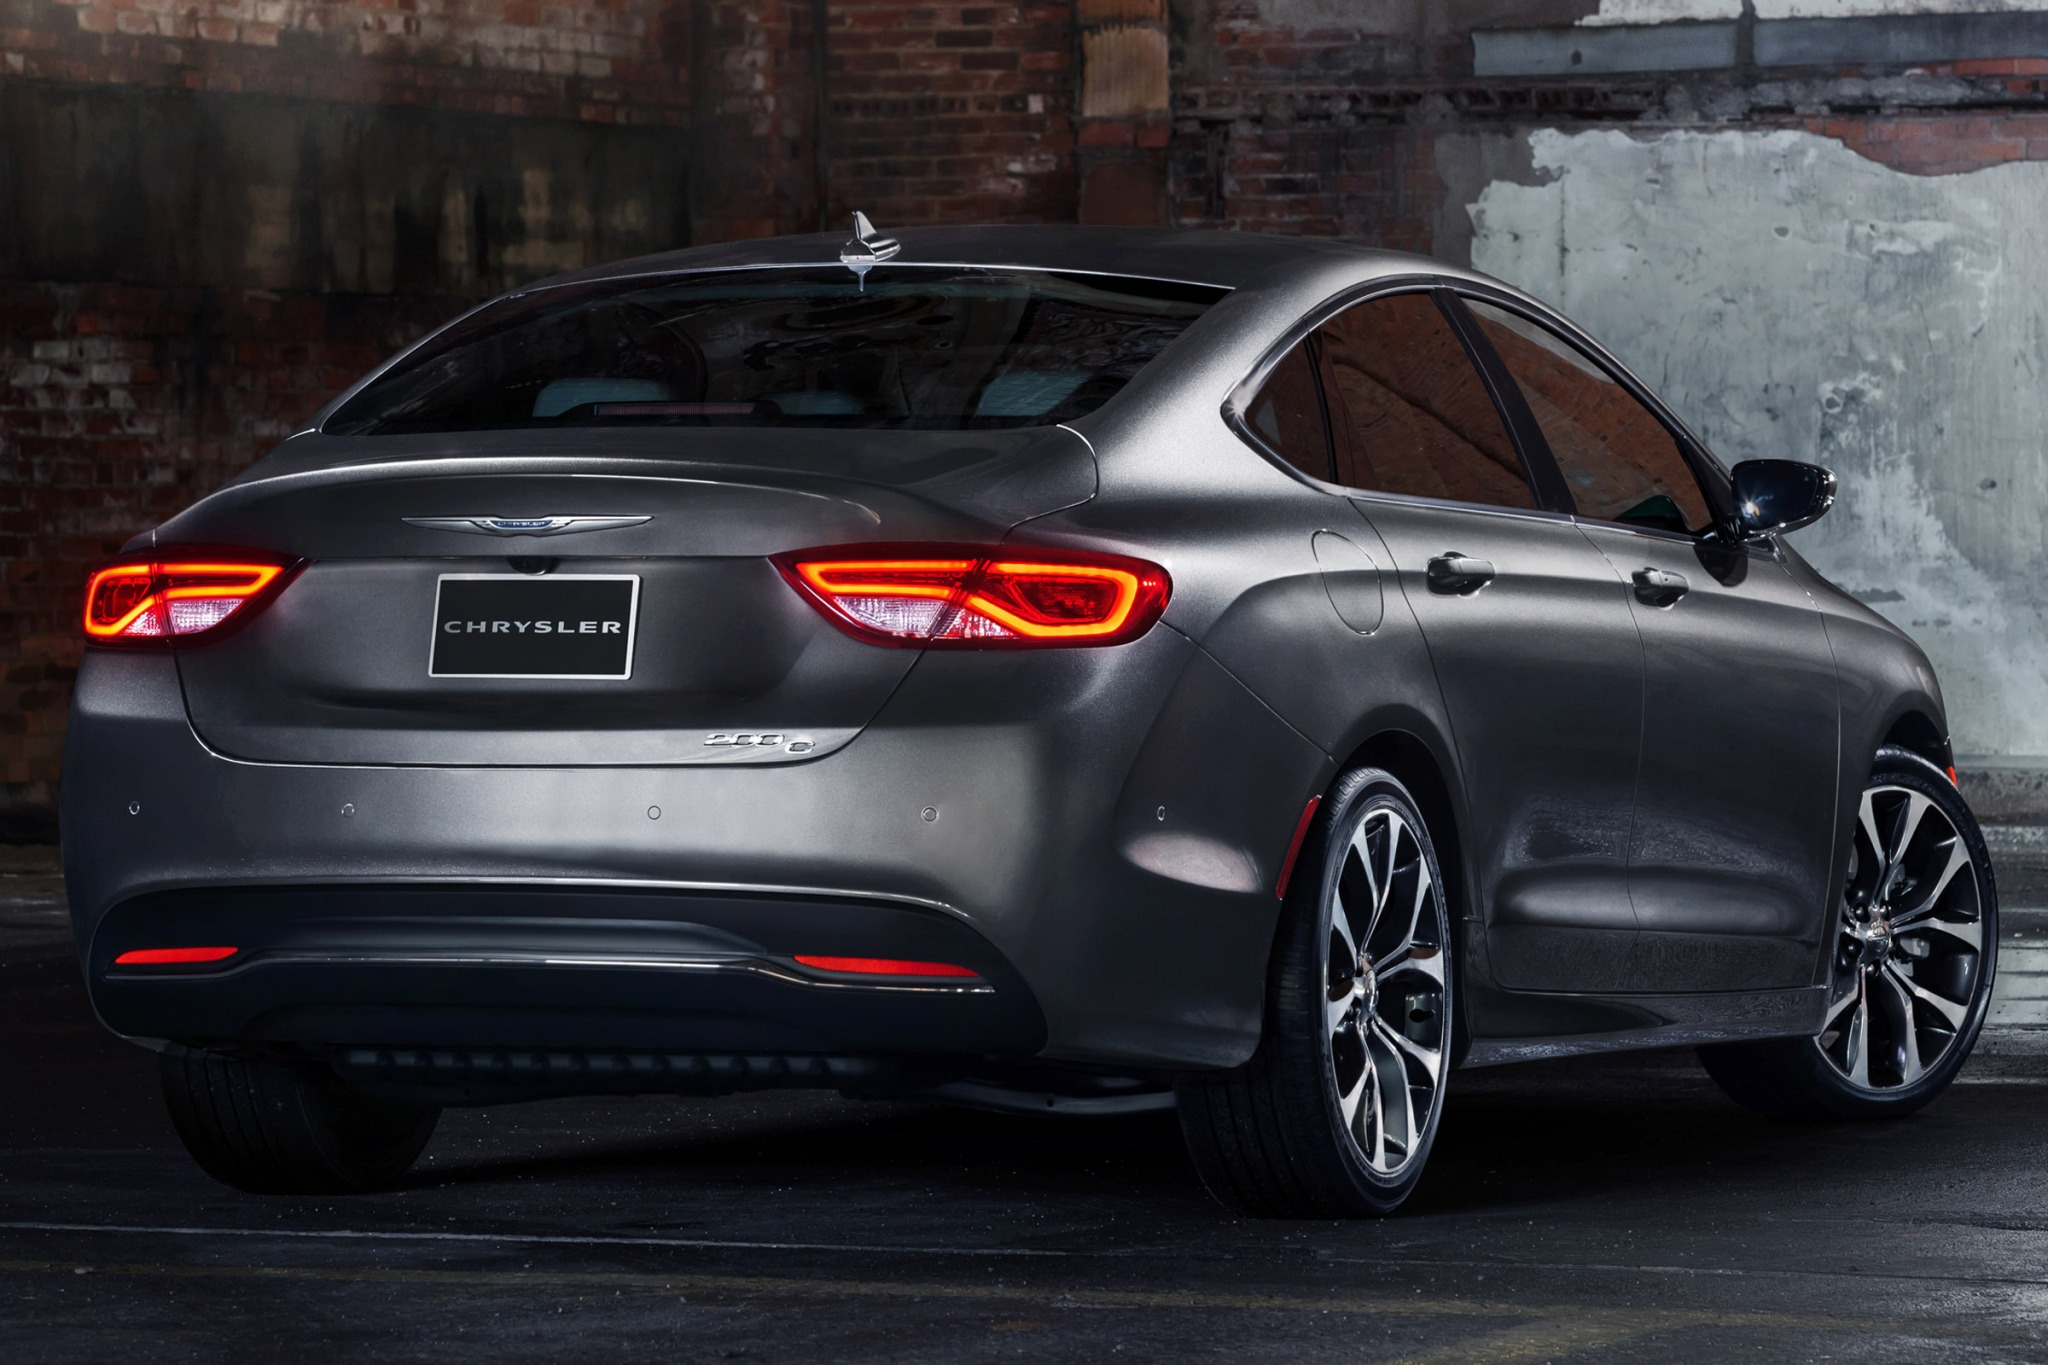 2015 Chrysler 200 C Sedan exterior #9